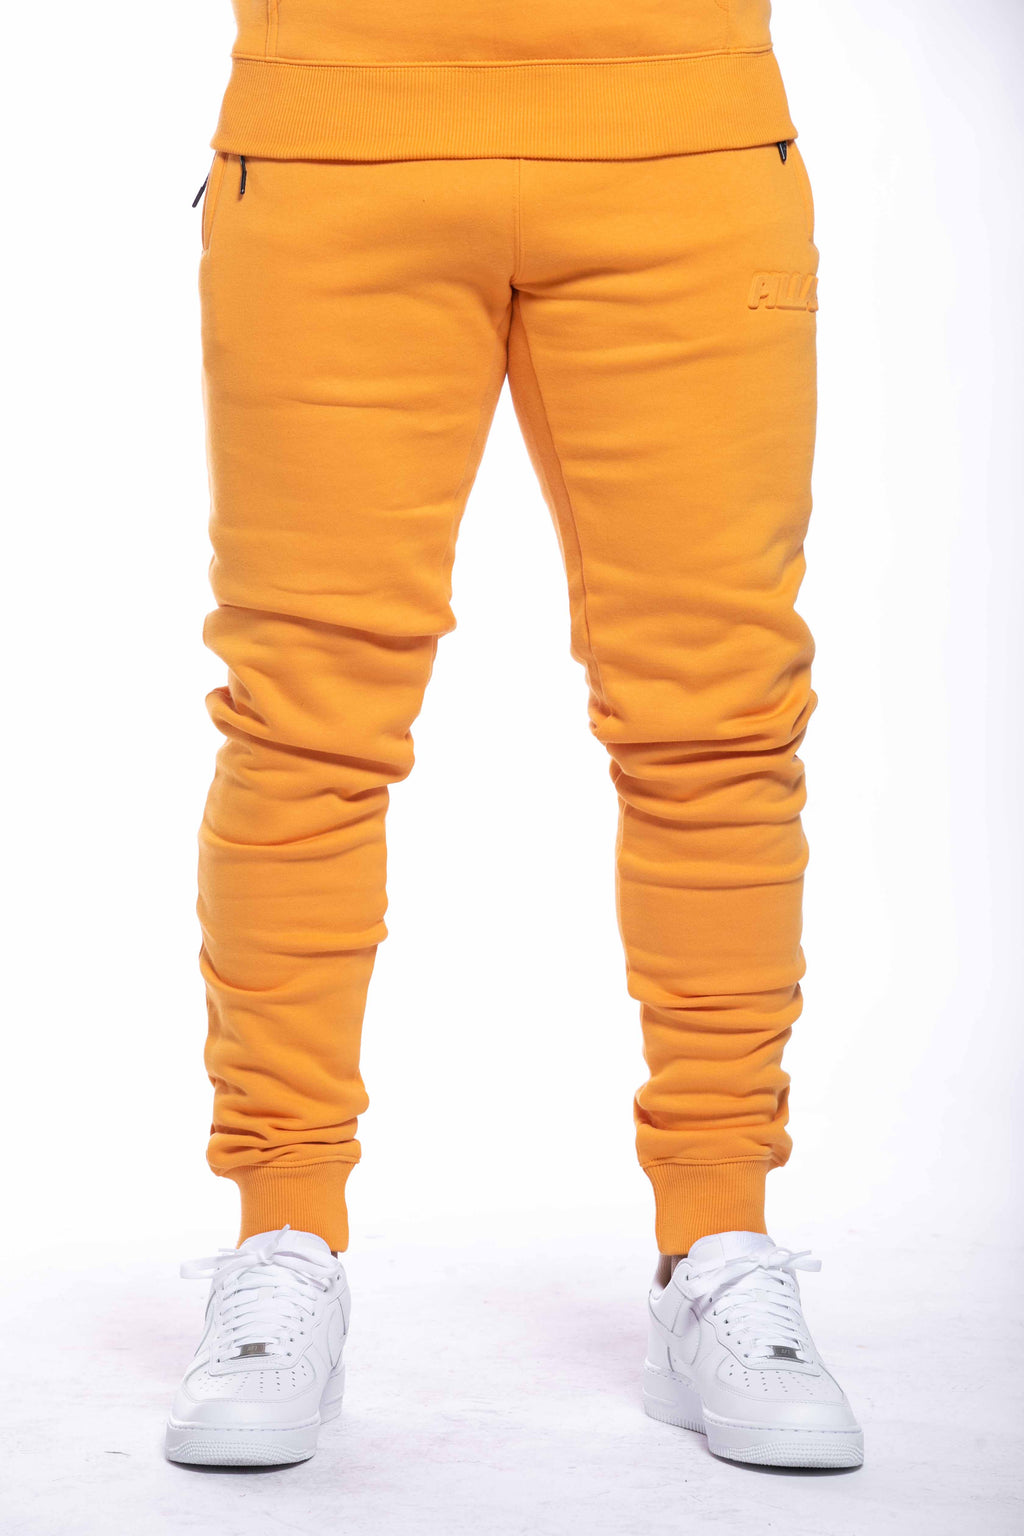 EMBOSSED LOGO PANT | KUMQUAT